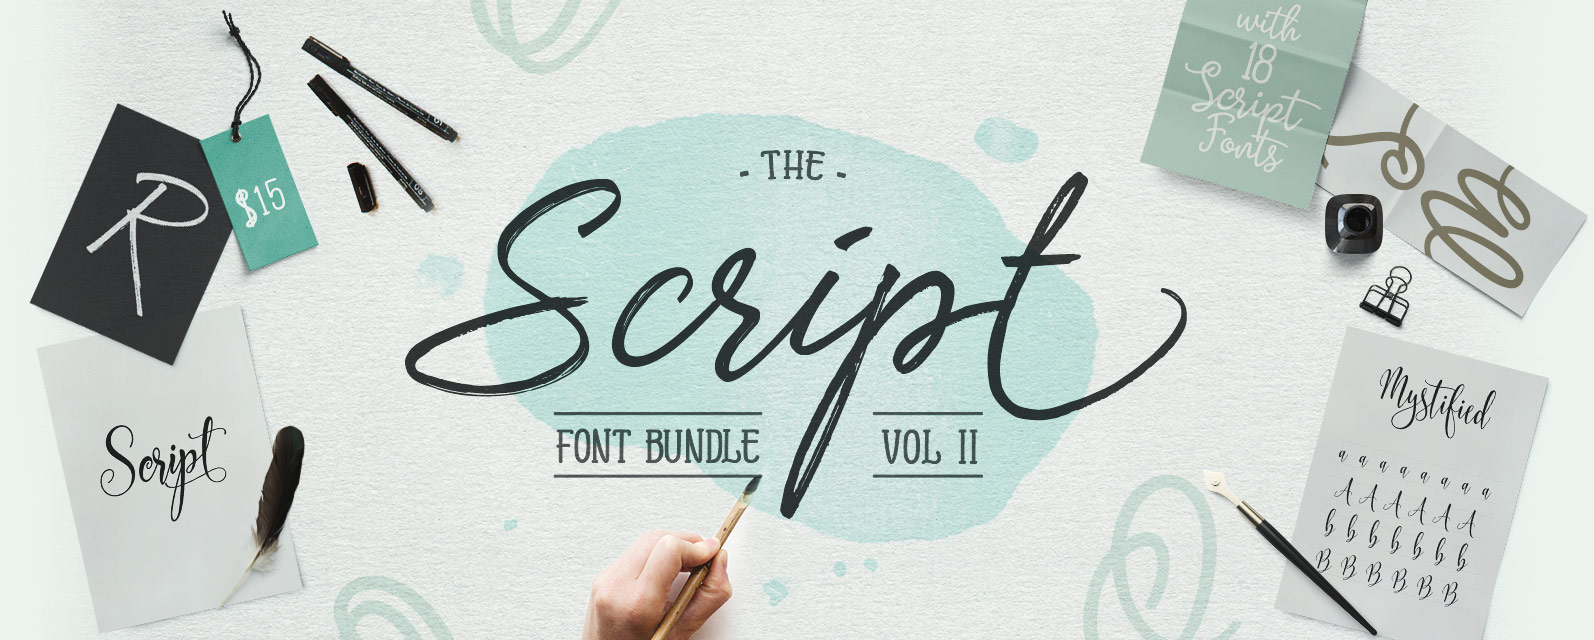 The Script Font Bundle Vol 2